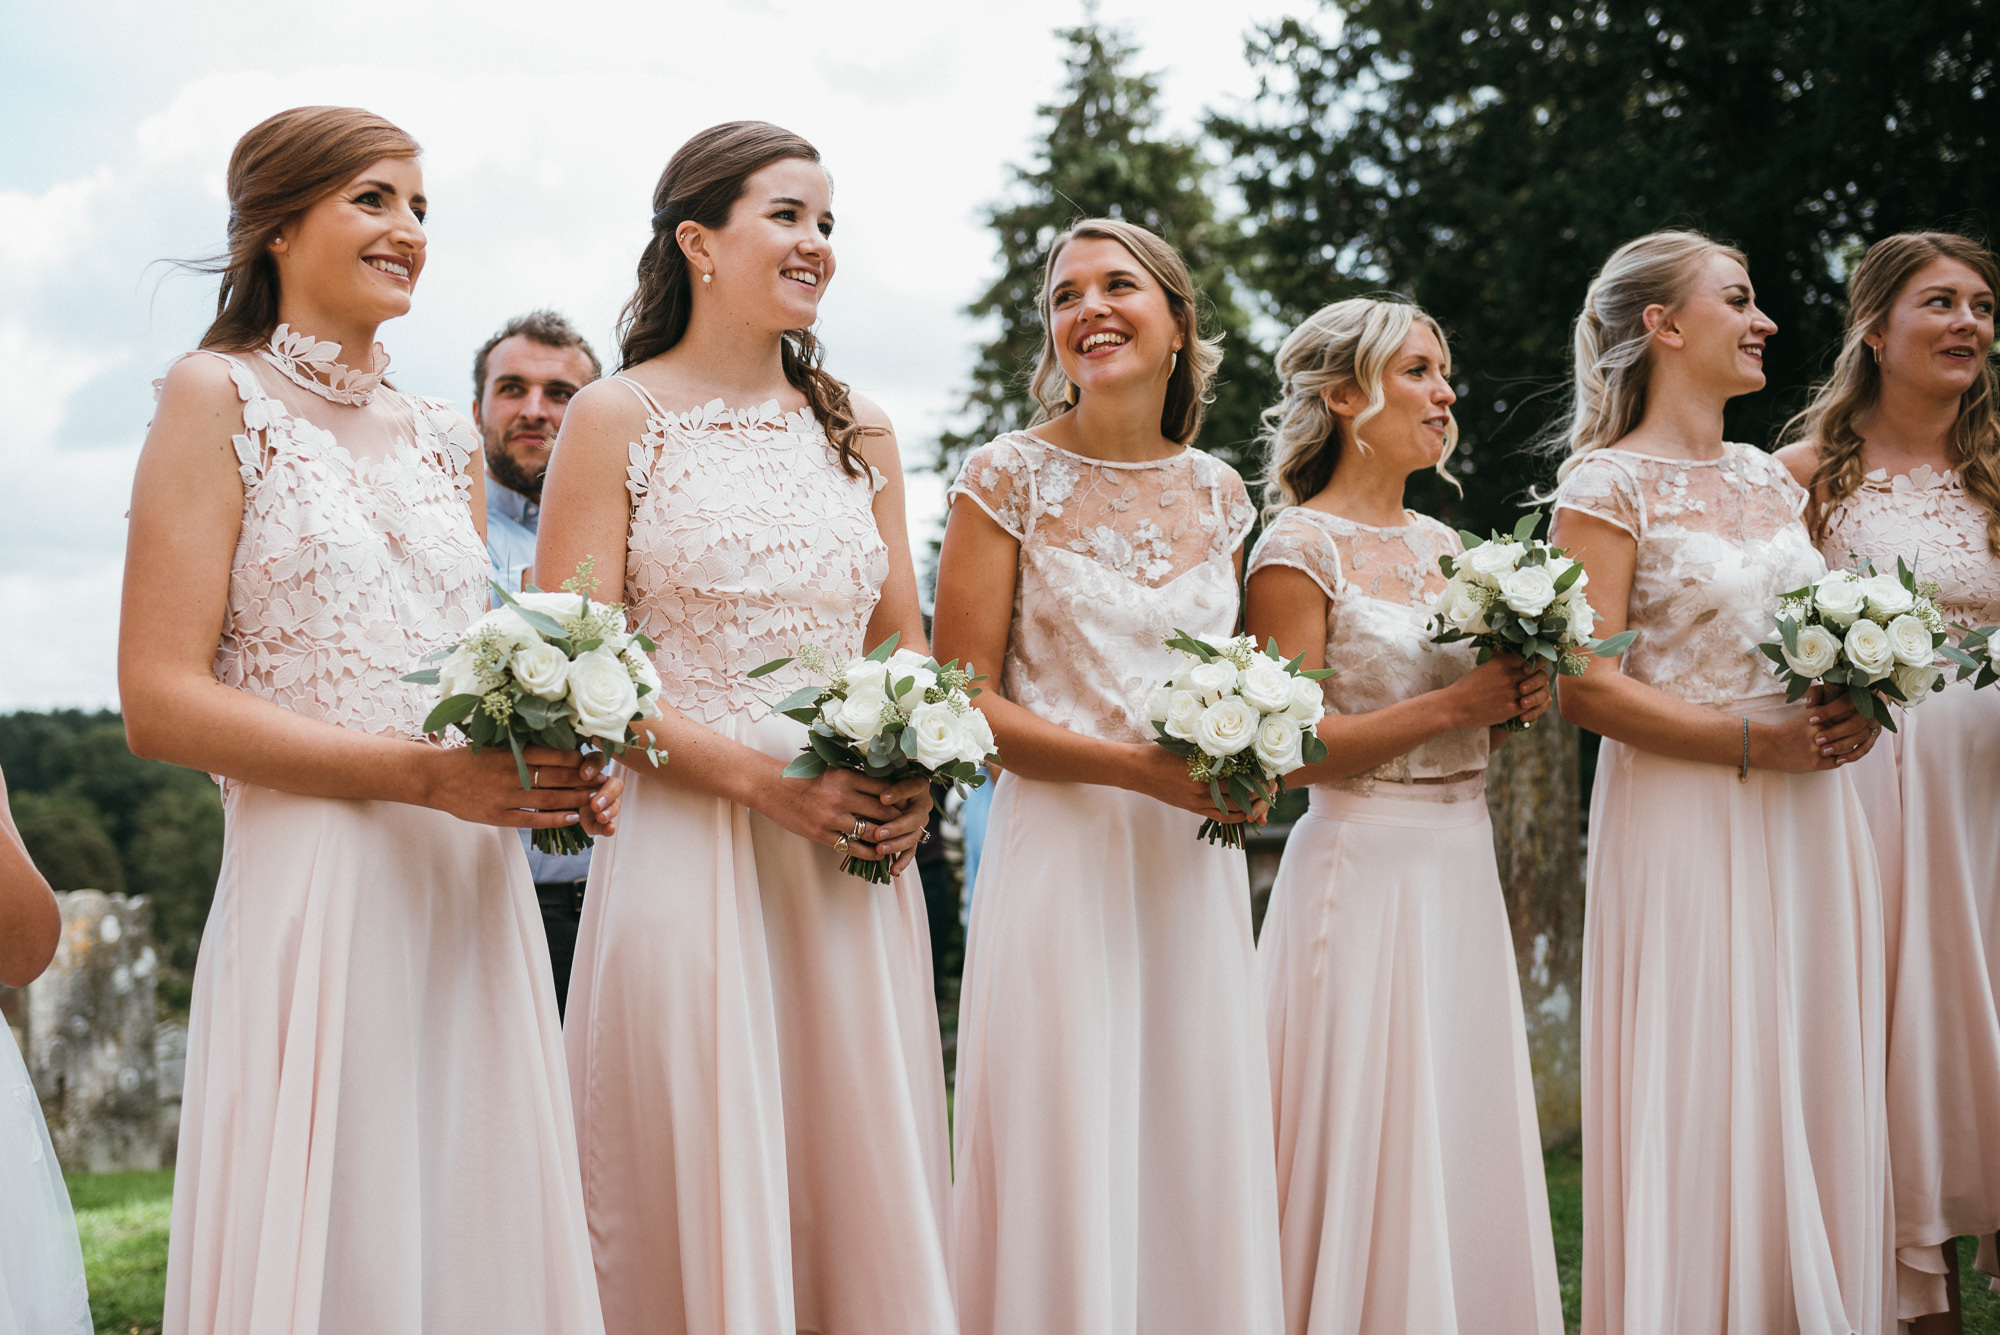 bridesmaids on wedding day